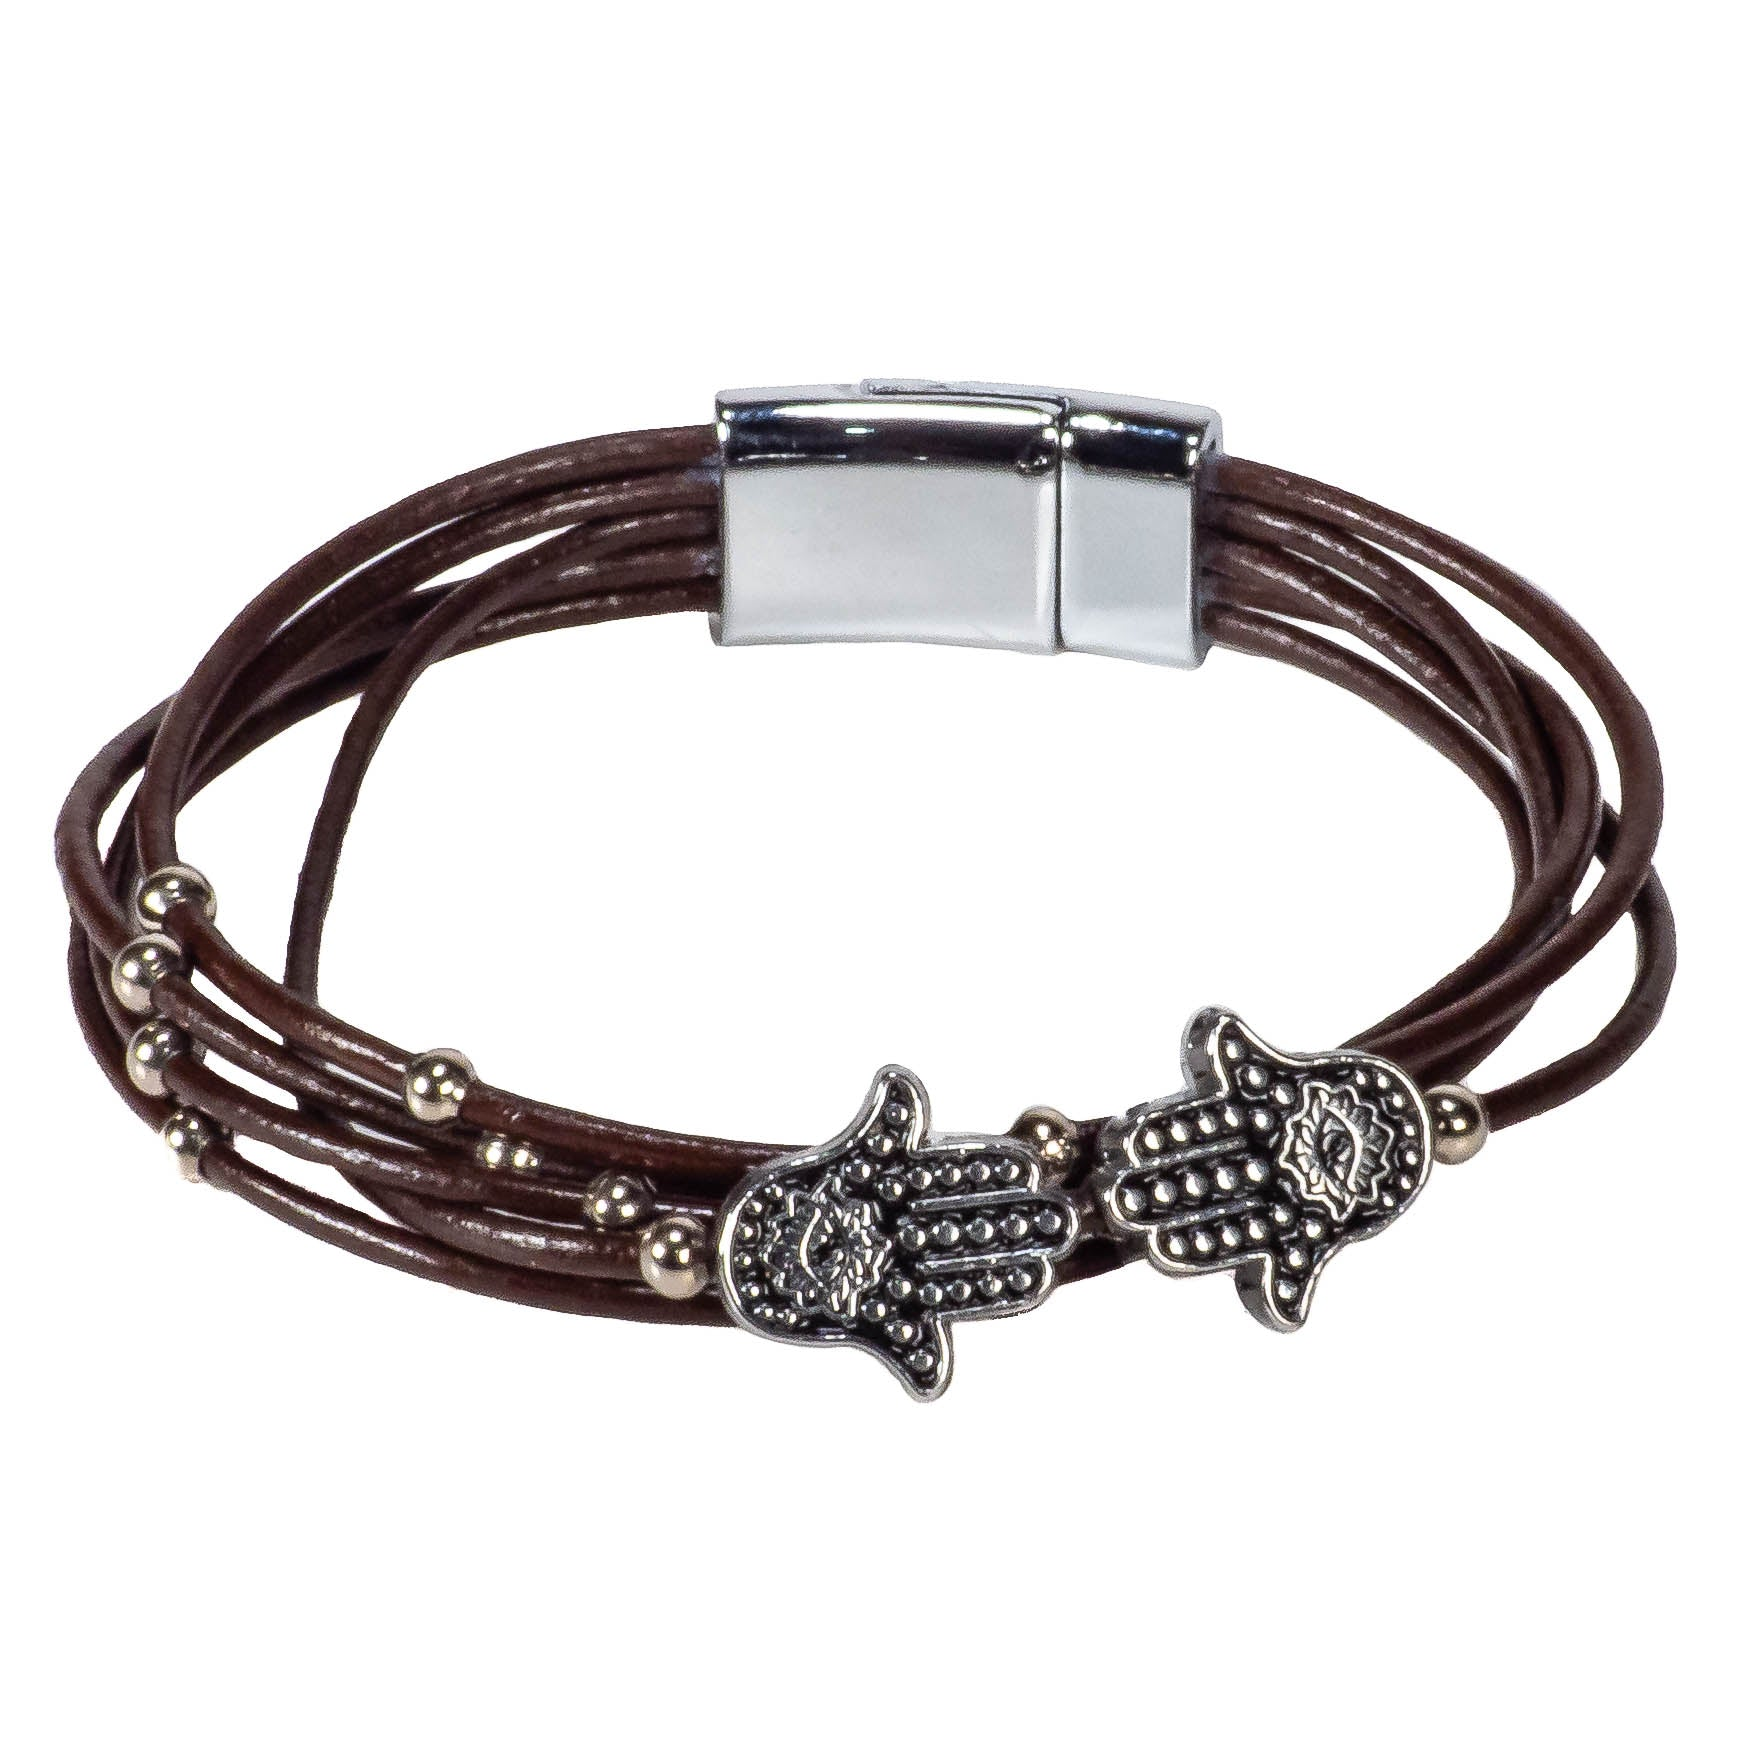 Brown Leather Cords Bracelet with Hamsa Slider Beads